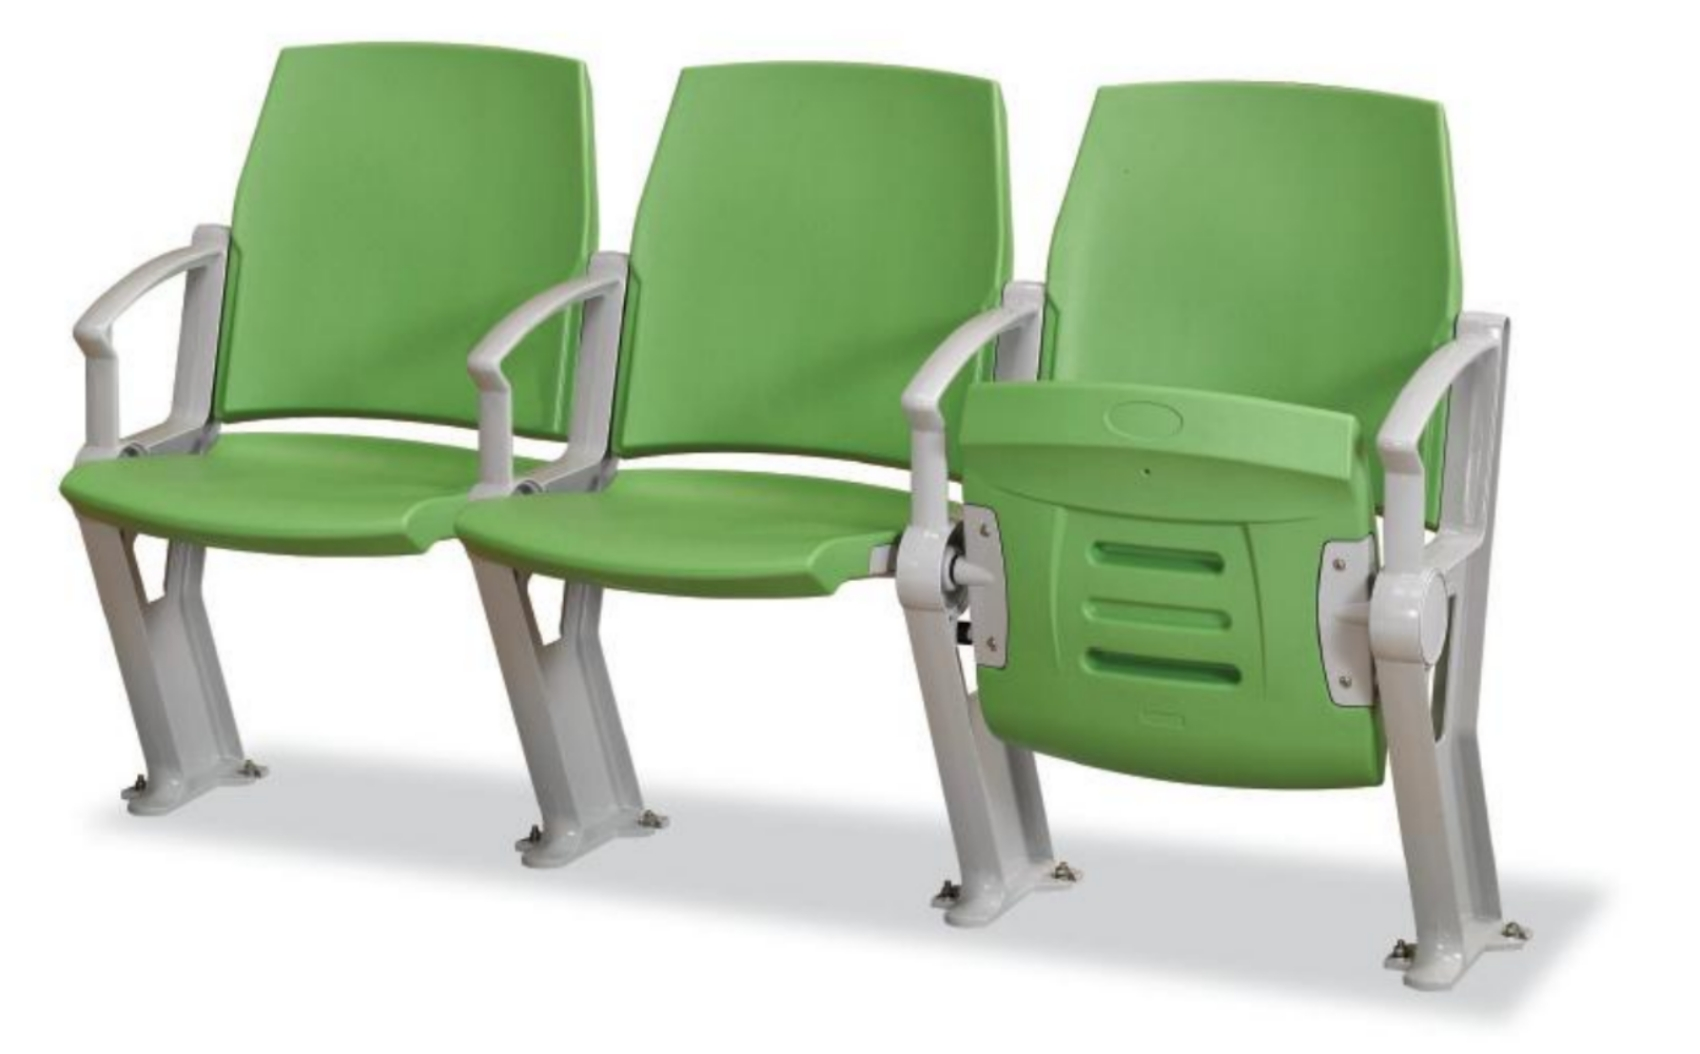 HR-2020(S) (Sports and stadia seating)